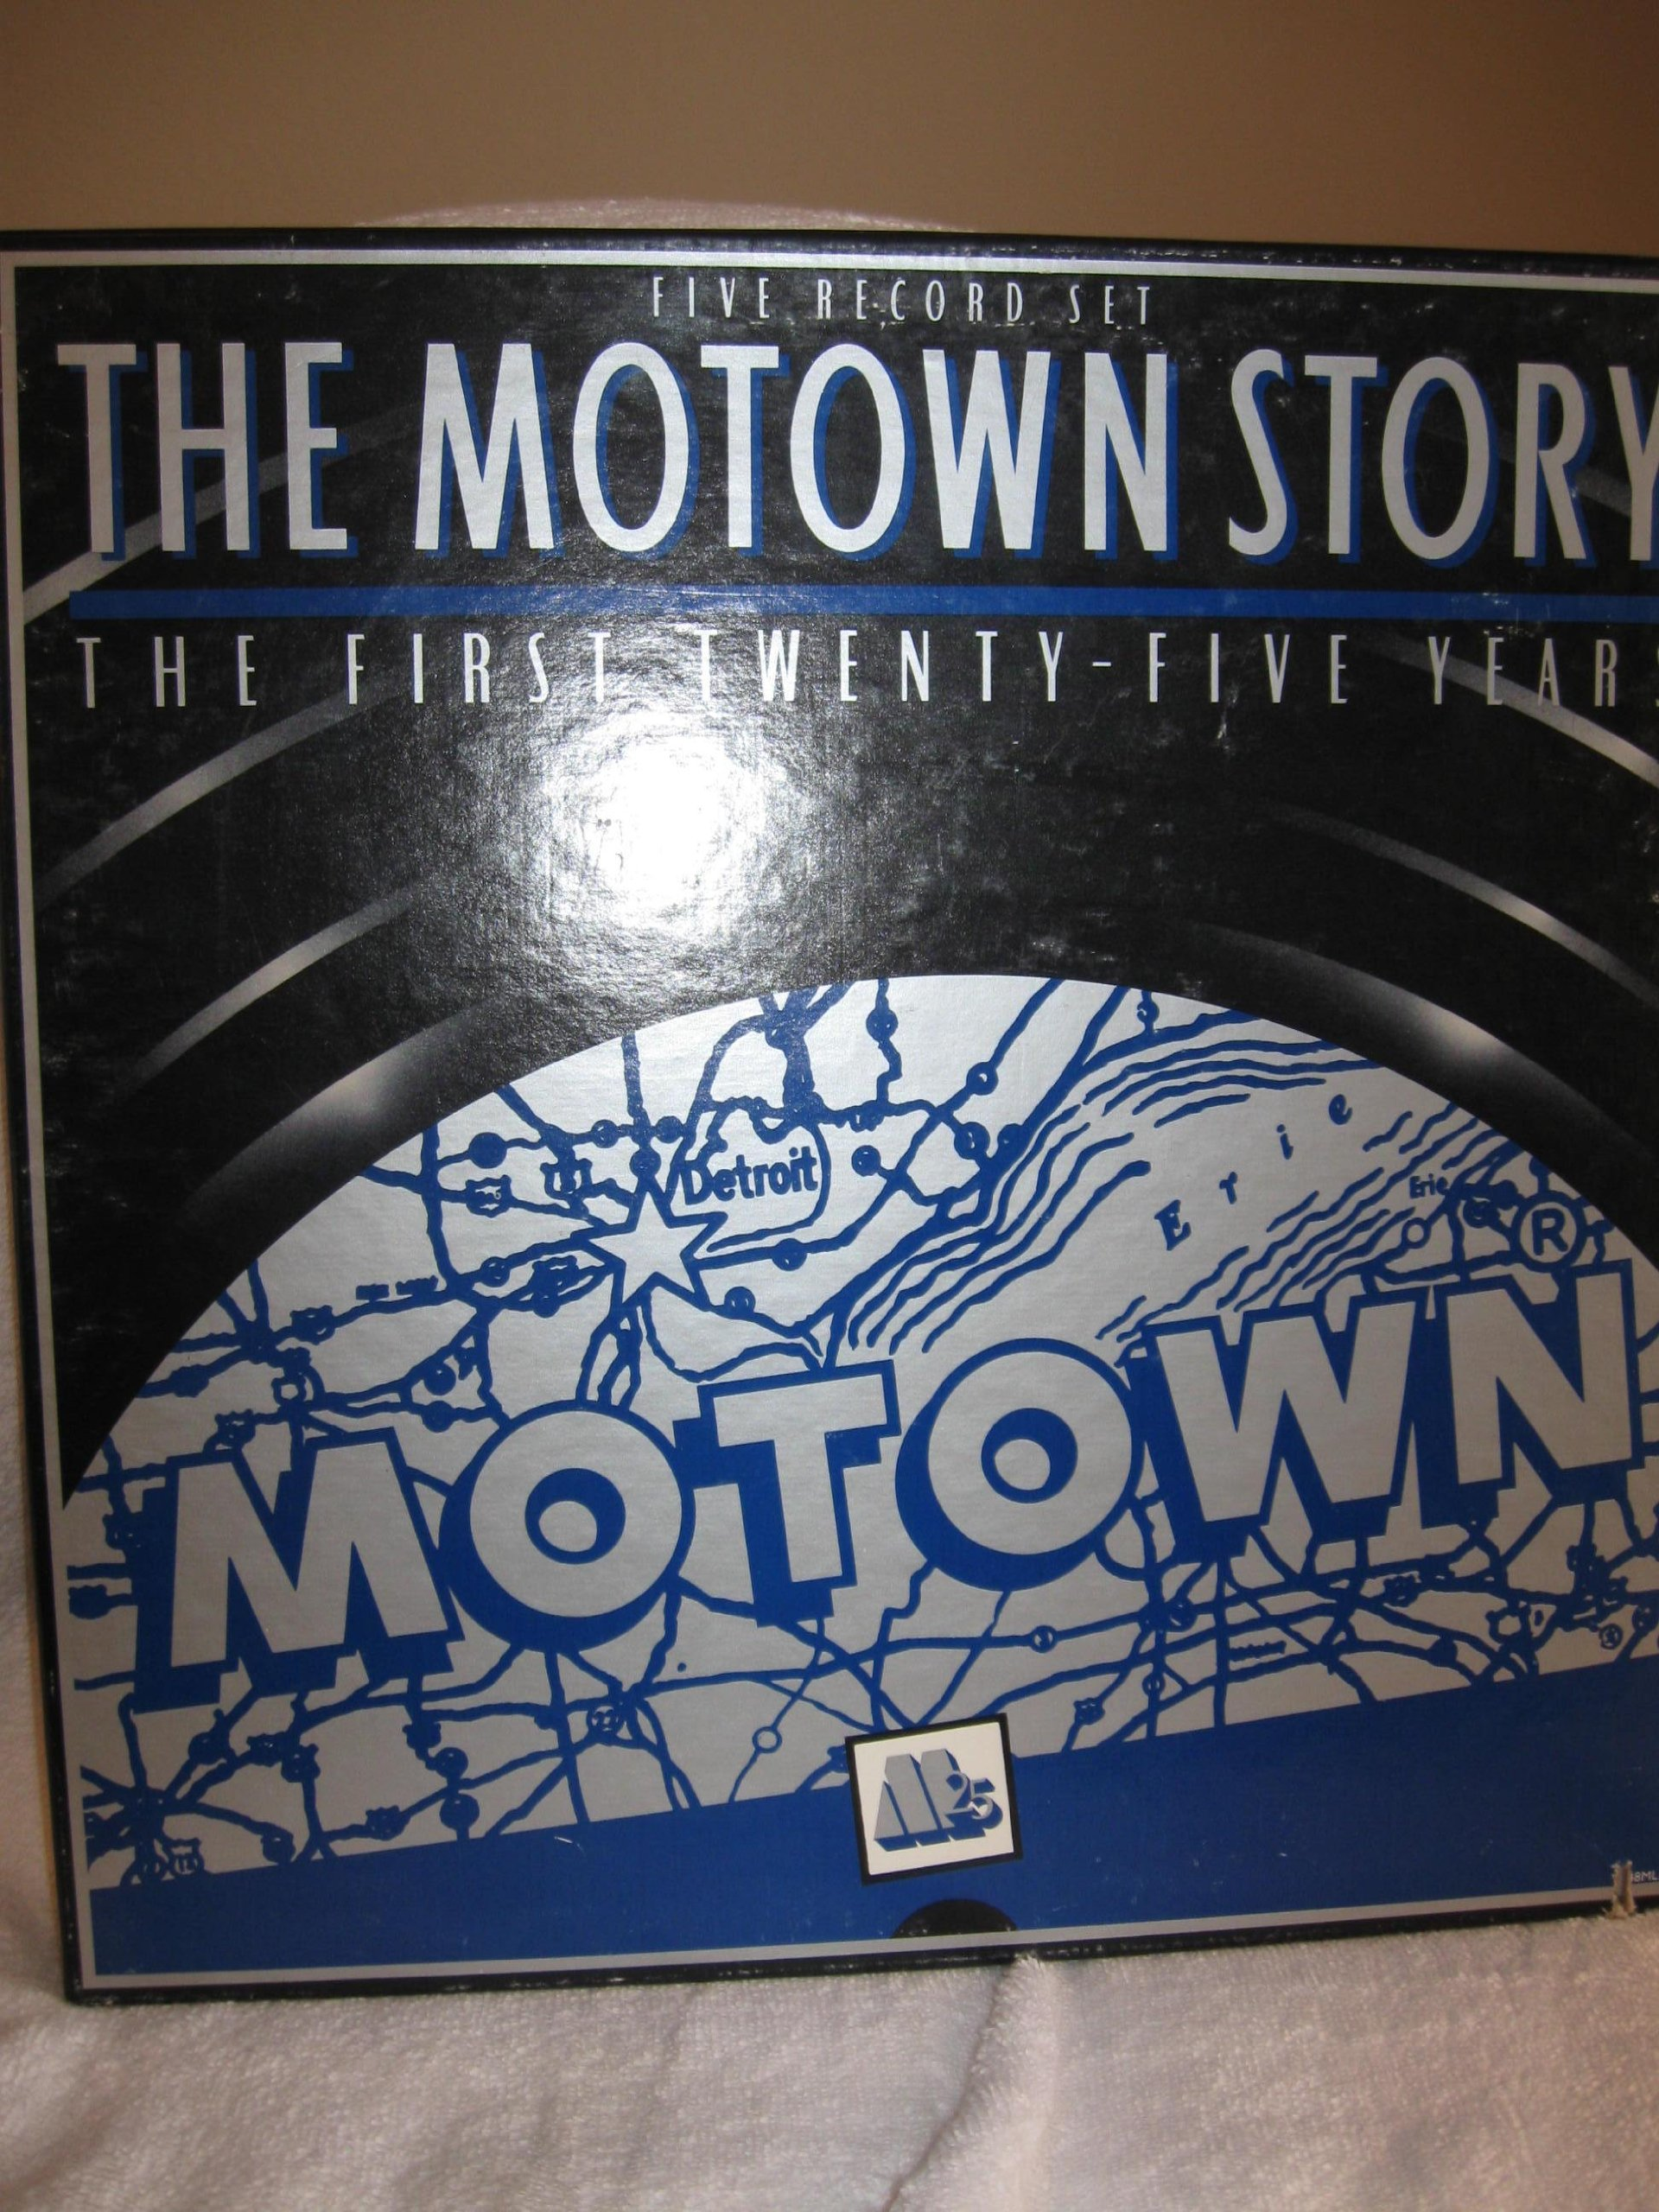 The Motown Story: First 25 Years [Vinyl] by Motown